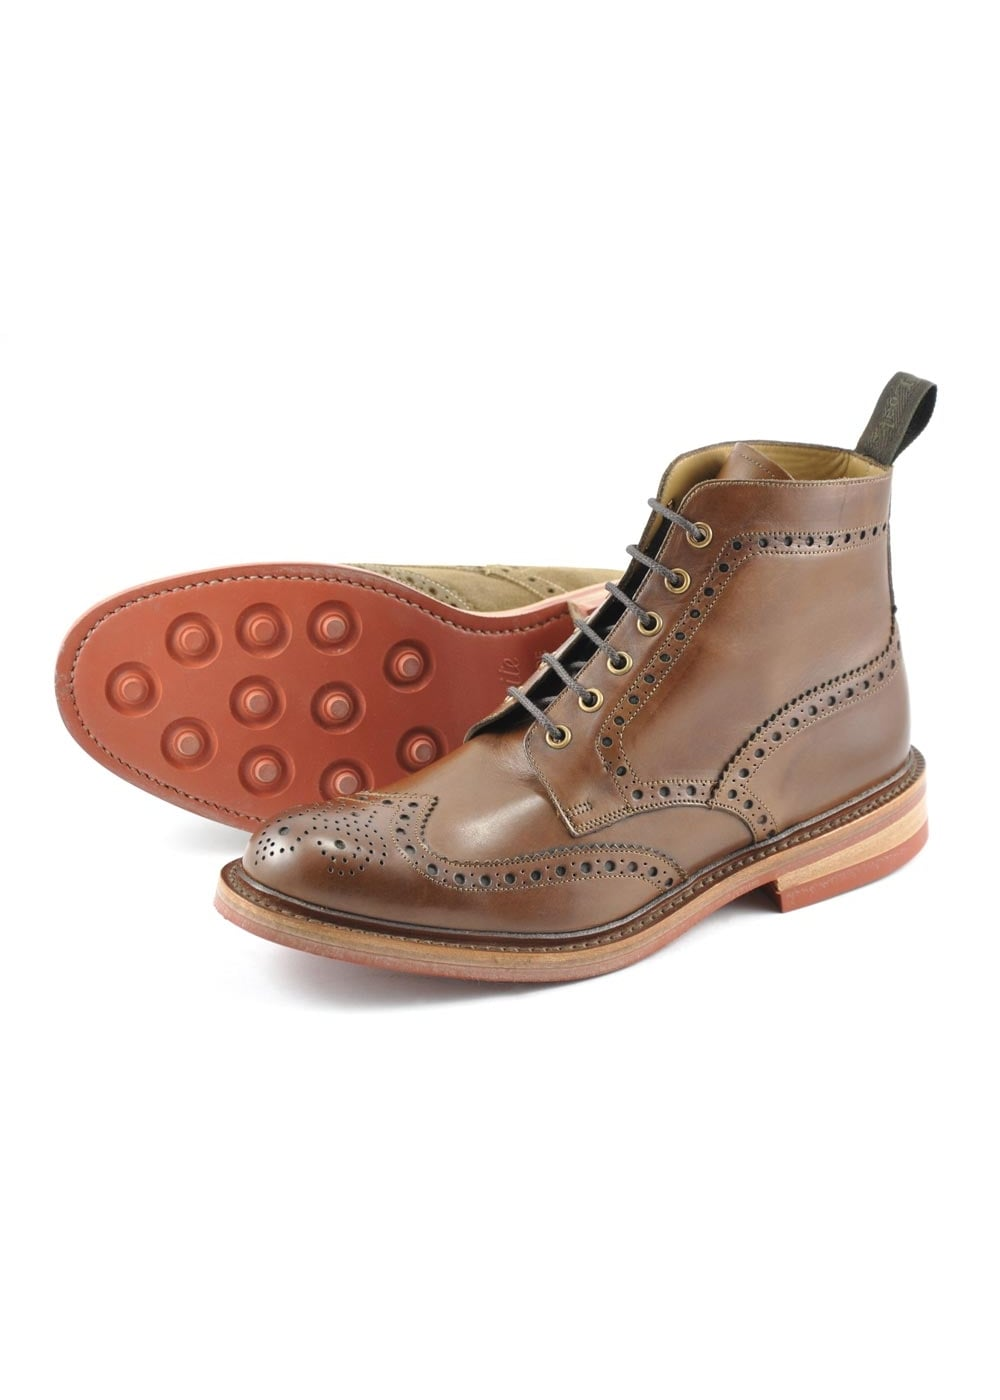 Loake Wharfdale Brogue Boot NEW Large Image